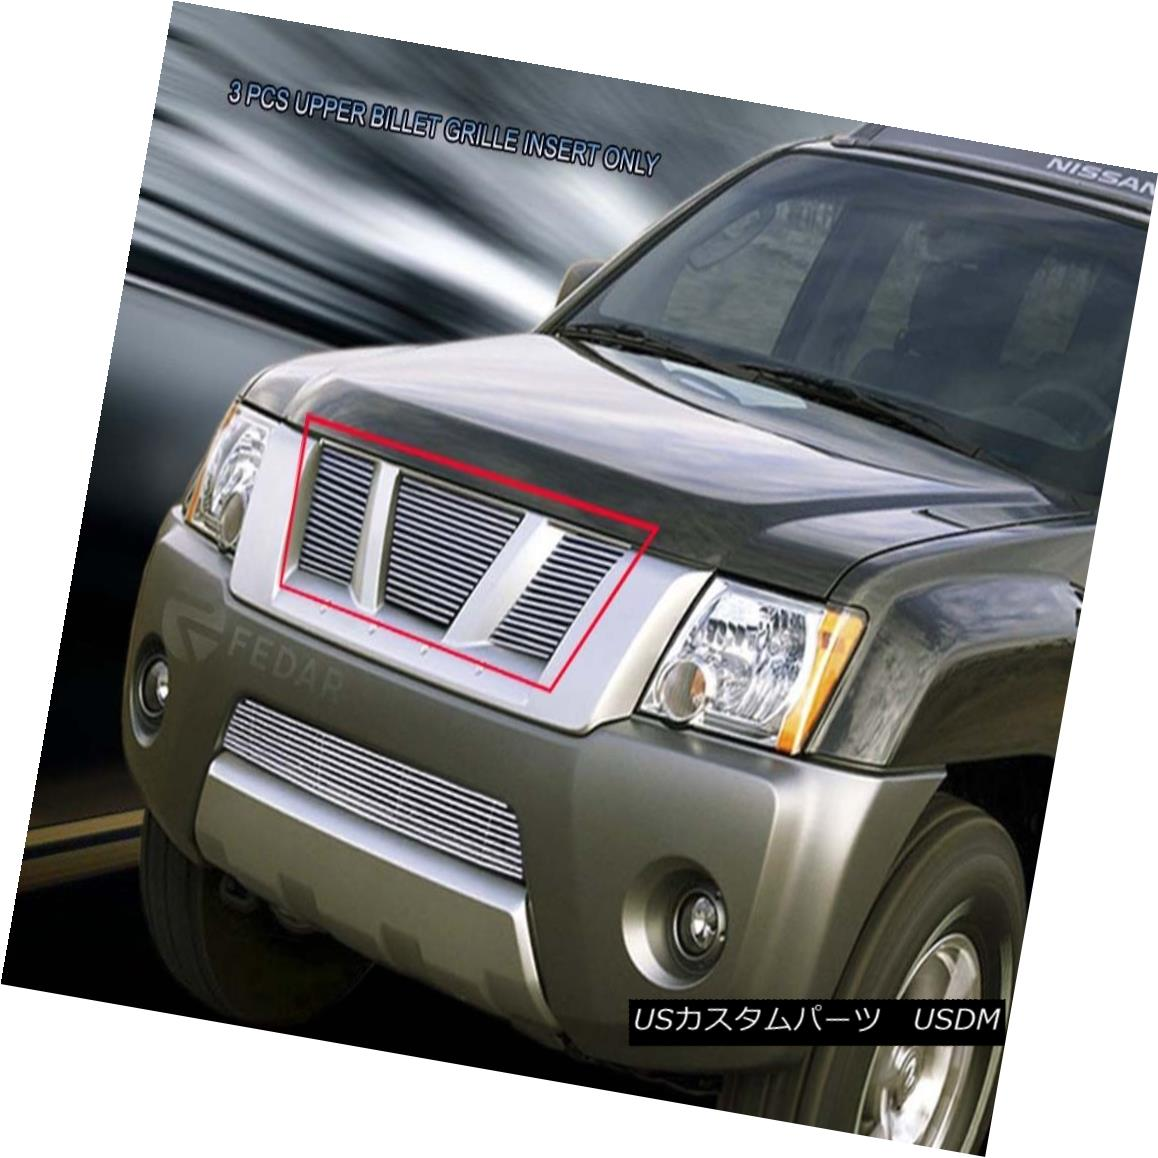 グリル For 2005-2008 Nissan Xterra Blot-On Billet Grille Upper Grill Insert Fedar 2005-2008日産のXterra Bolt-OnビレットグリルアッパーグリルインサートFedar